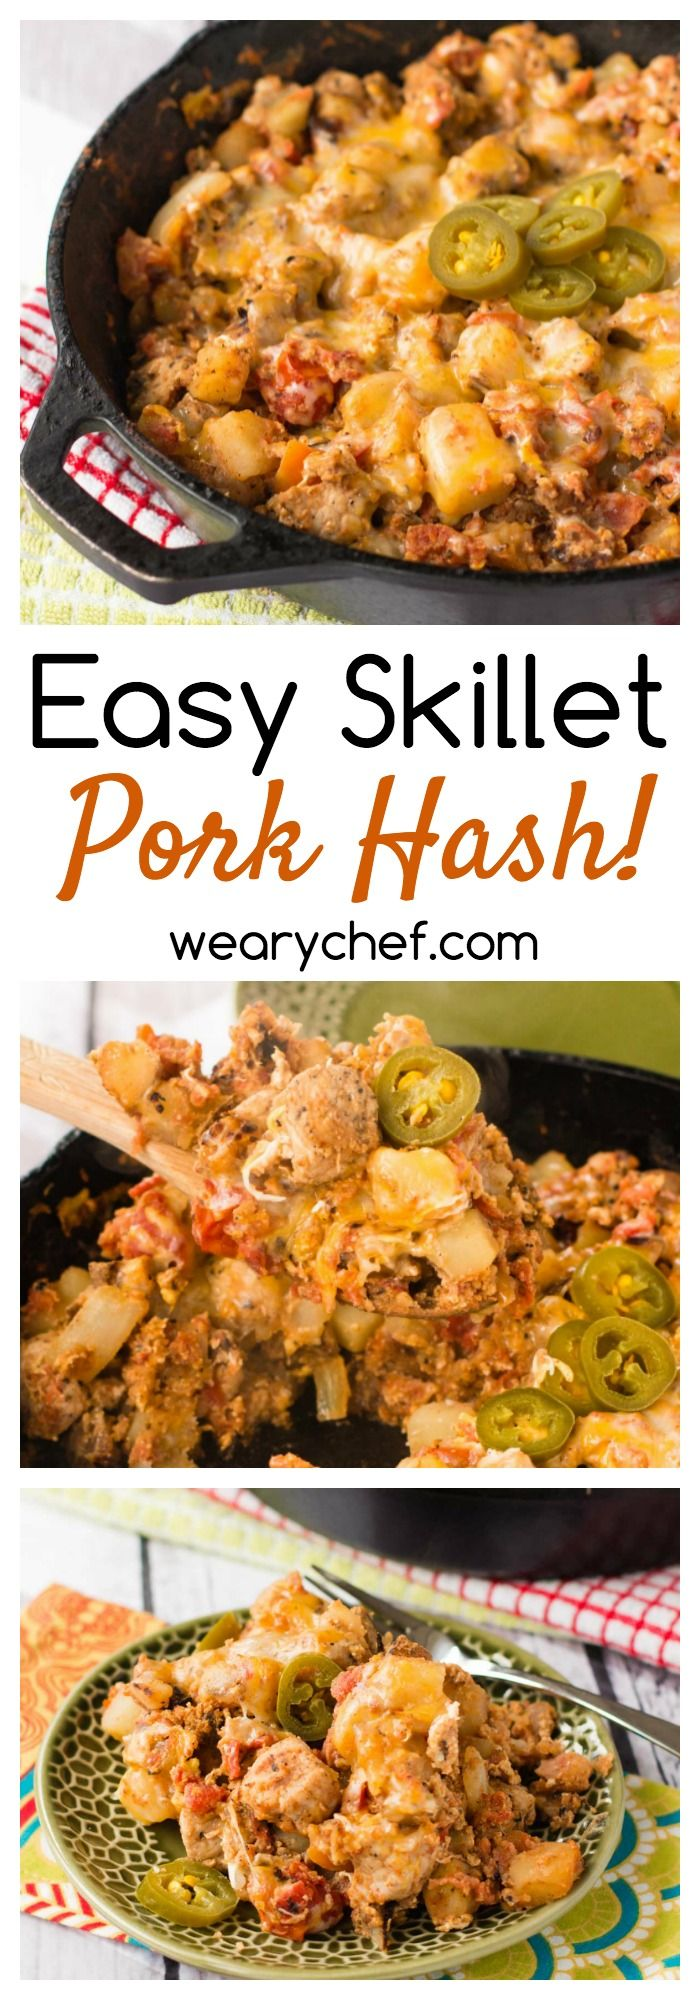 This 30-minute pork hash recipe loaded with eggs, potatoes, and tomatoes is perfect for breakfast or dinner!